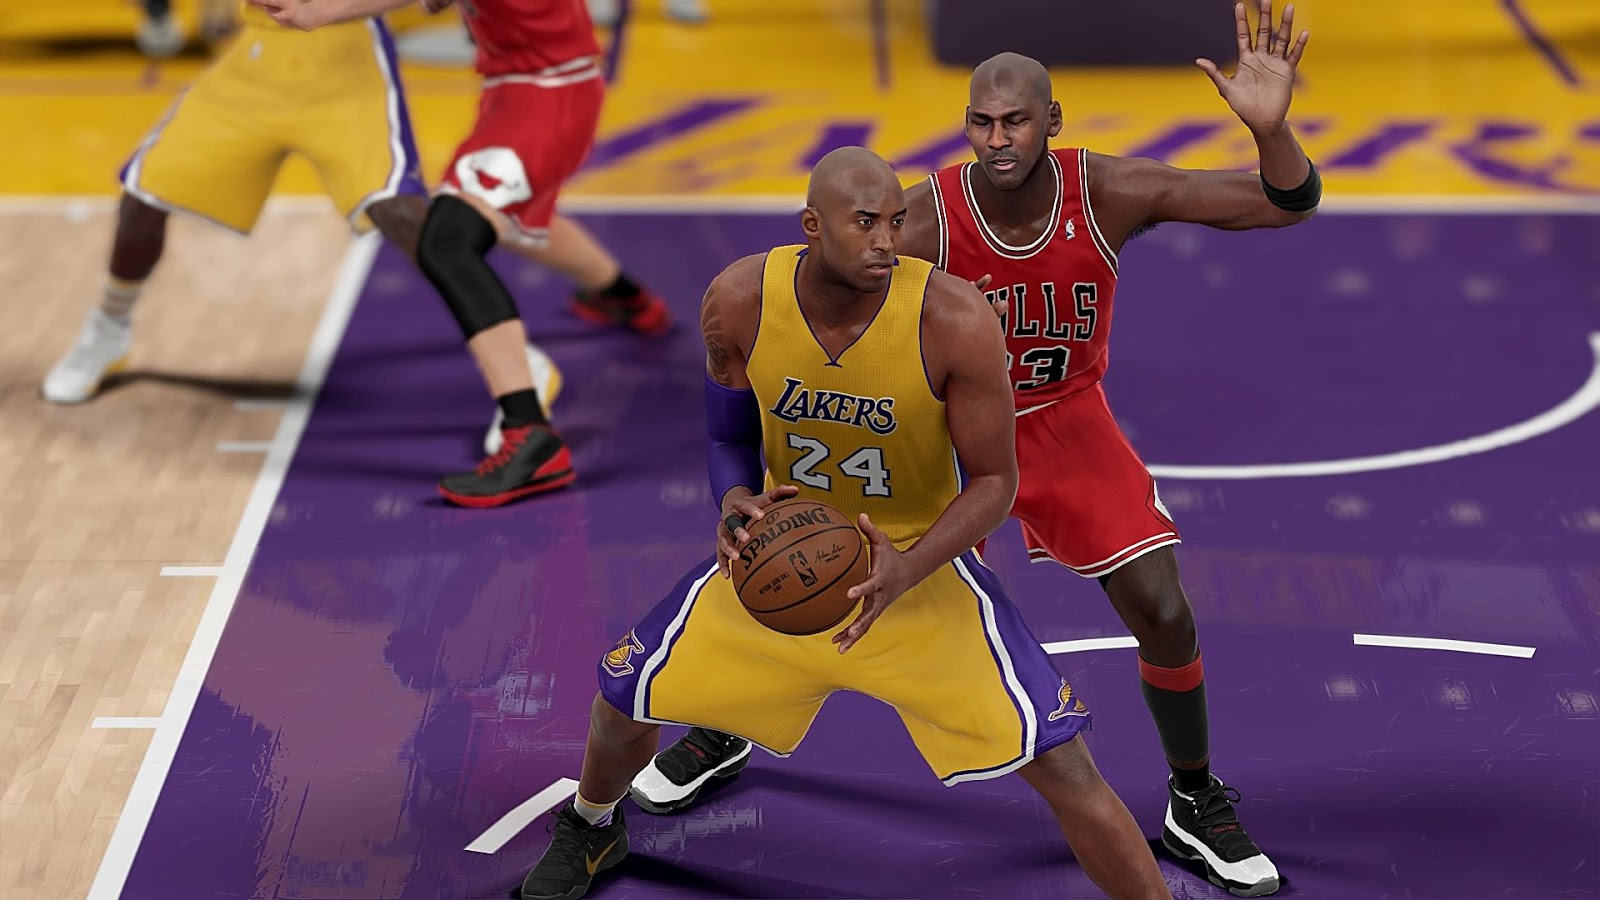 Nba 2k19 Apk With Data+ Obb For Android Free Download